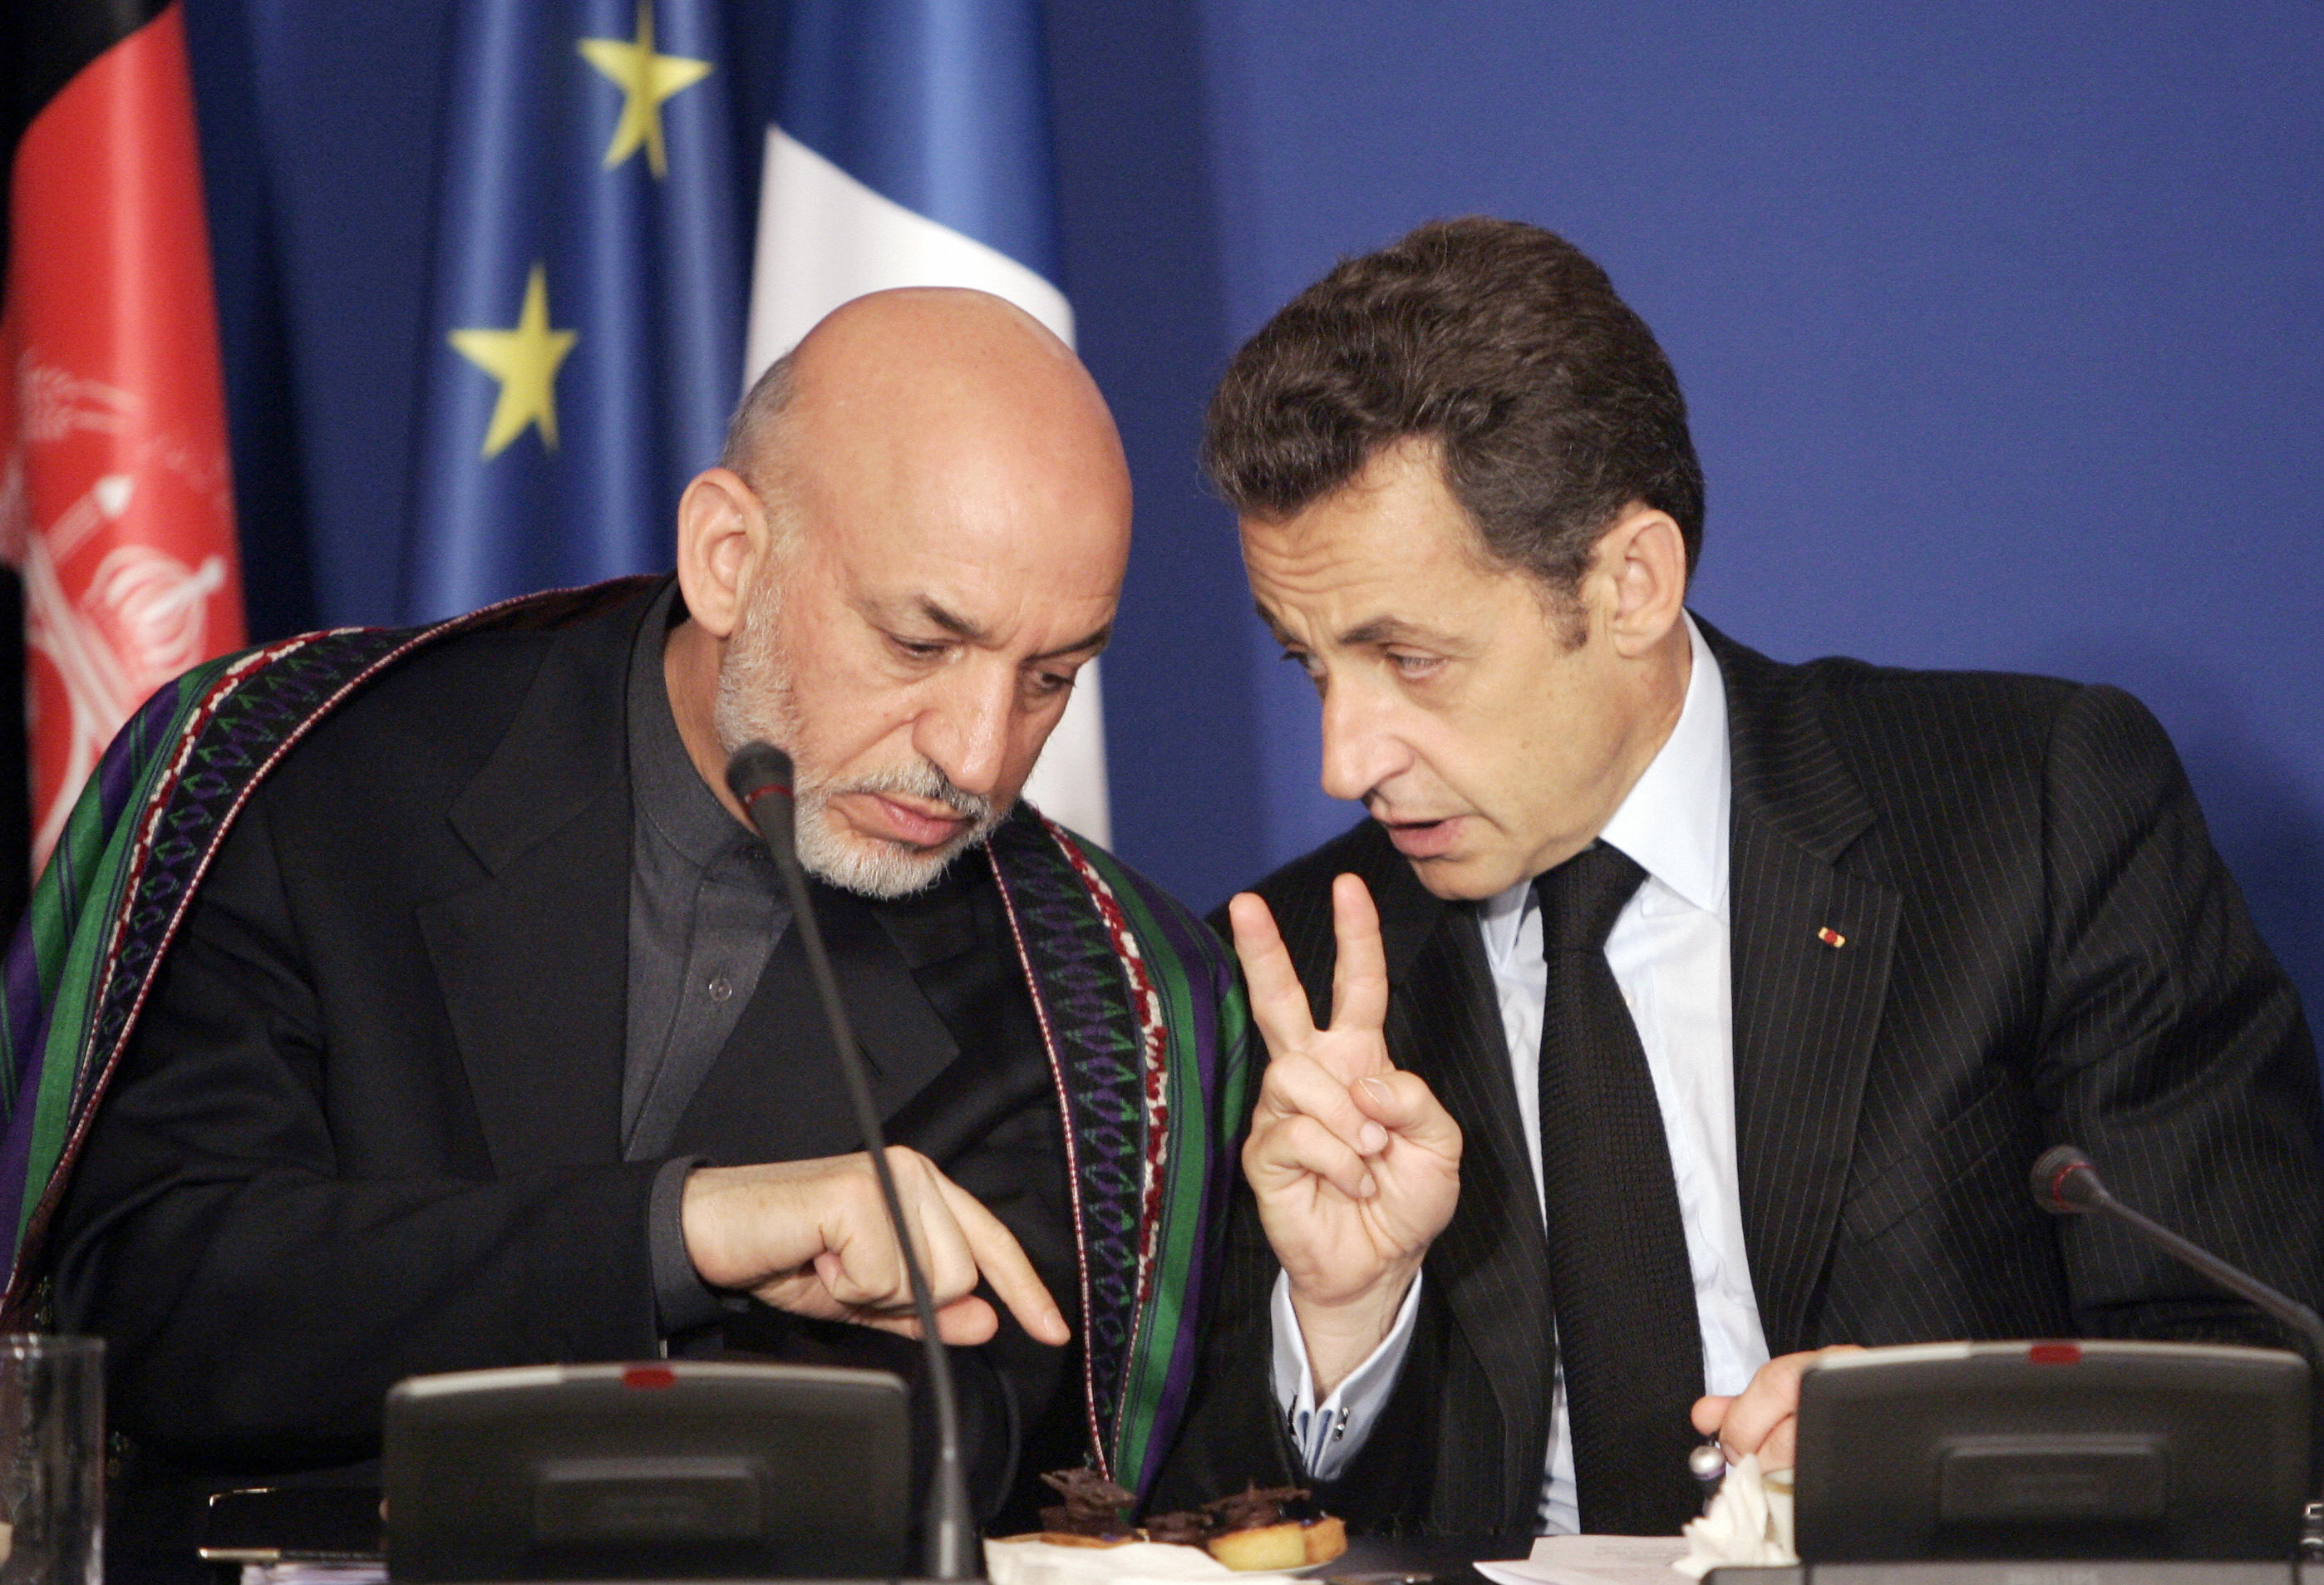 French President Nicolas Sarkozy  chats with Afghan President Hamid Karzai.